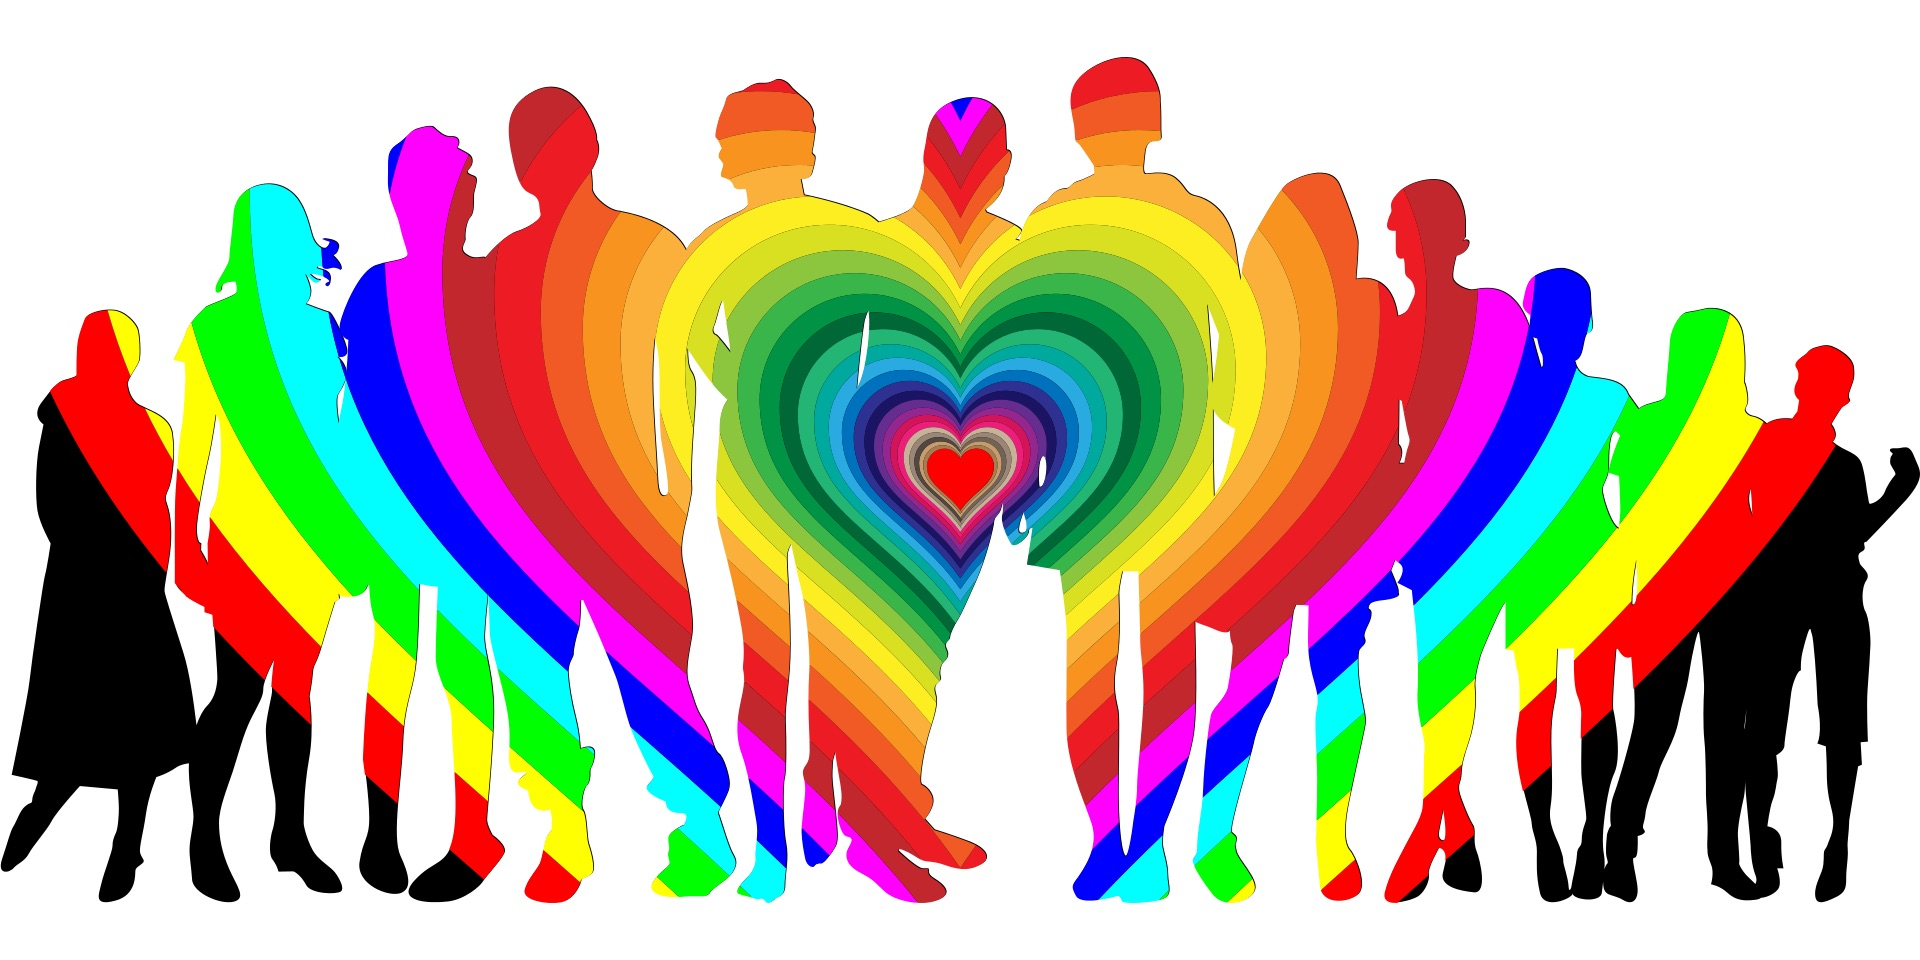 A row of 12 people in rainbow colors